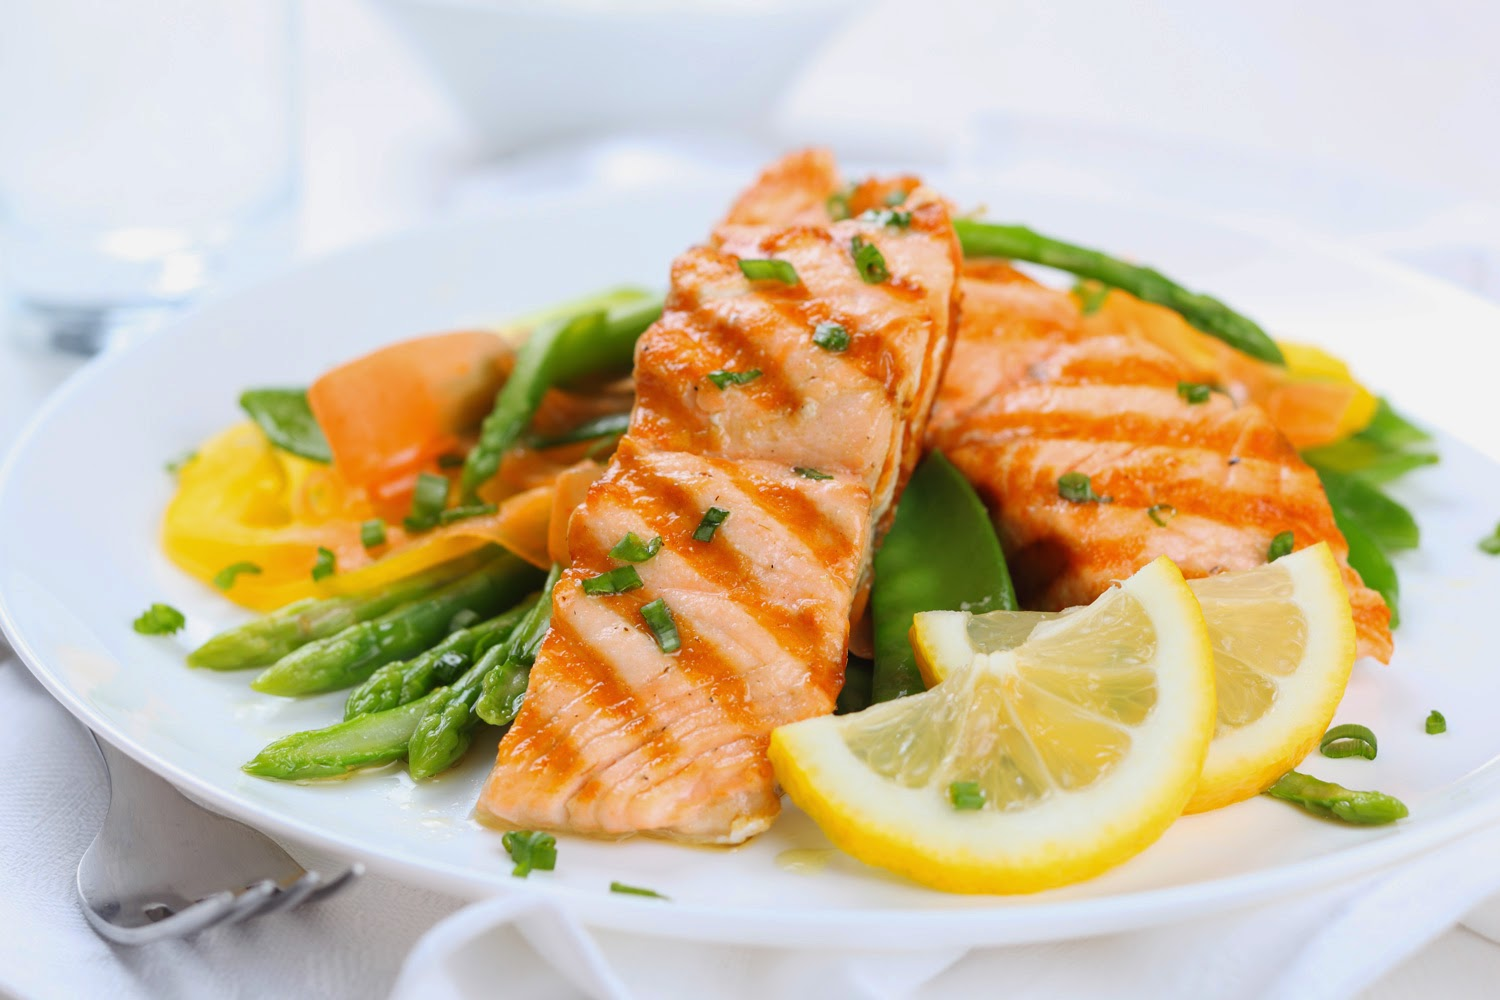 recpies, Cooking a Delicious Fish Dinner, Delicious Fish Dinner,  Citrus-Glazed Salmon recipe,